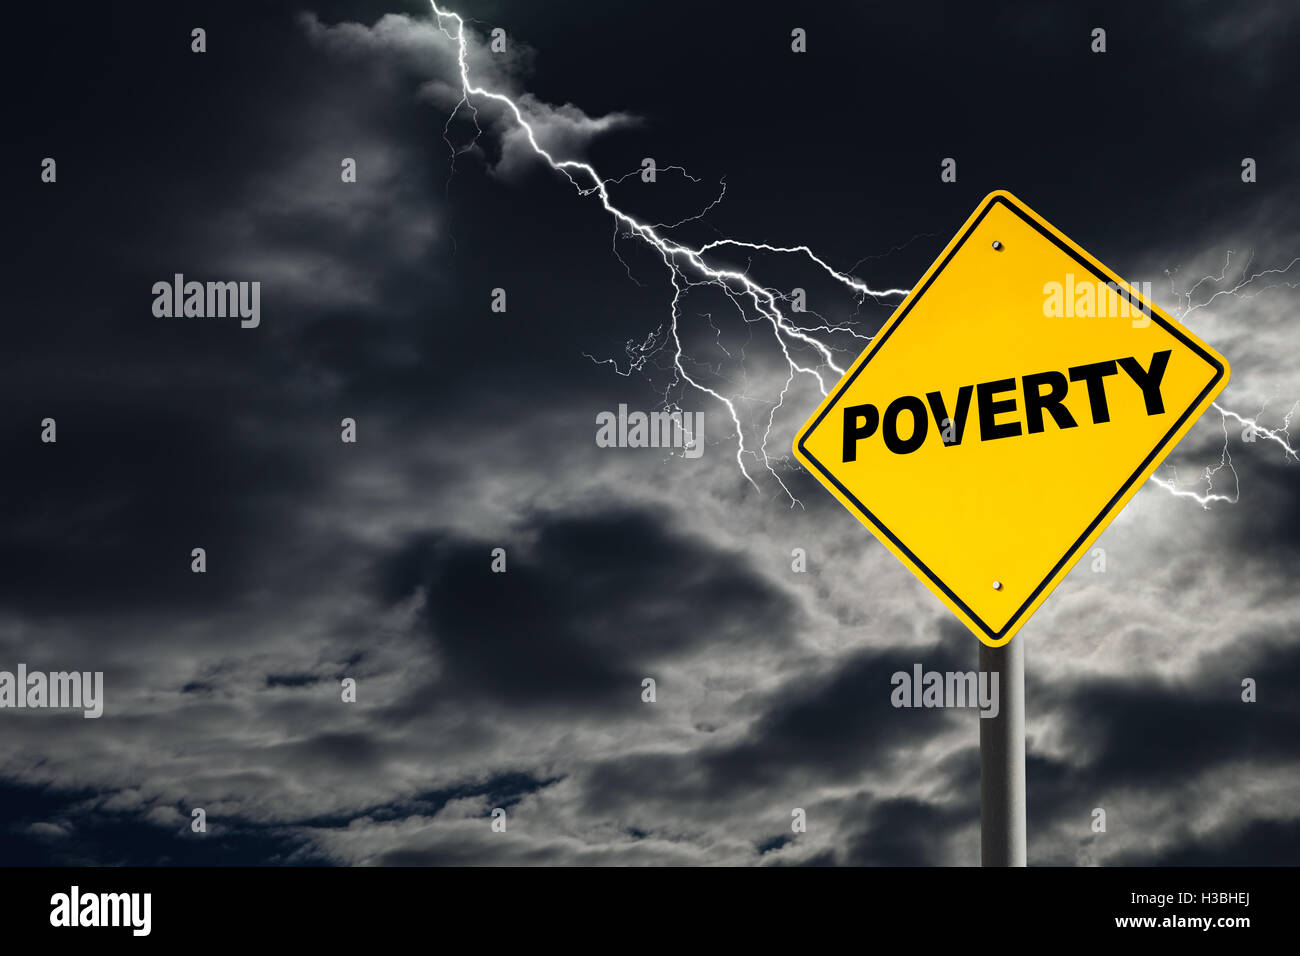 Poverty warning sign against a dark, cloudy and thunderous sky. Concept of poverty without solutions. - Stock Image